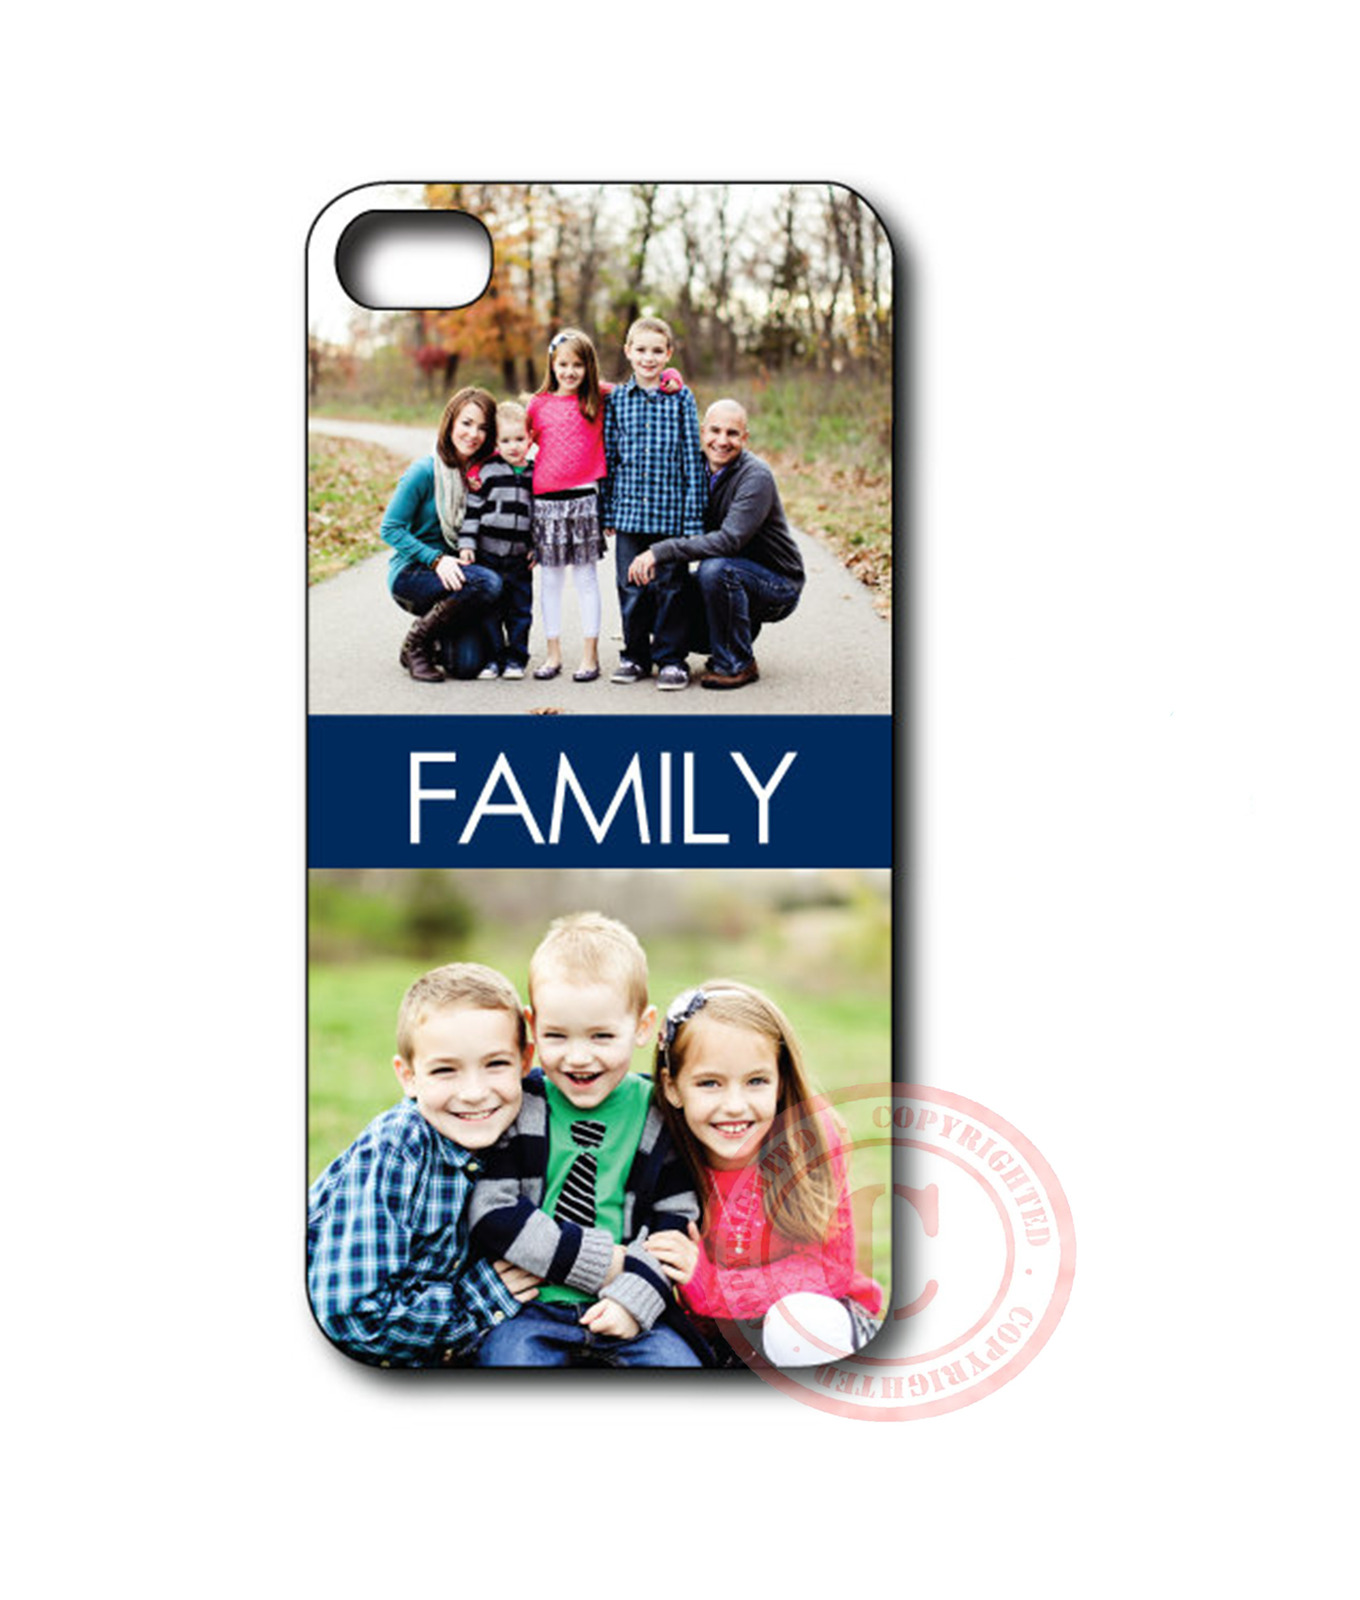 Custom Your Own Image Family Gift iPhone Case - Rubber Silicone iPhone 5 Case for sale  USA